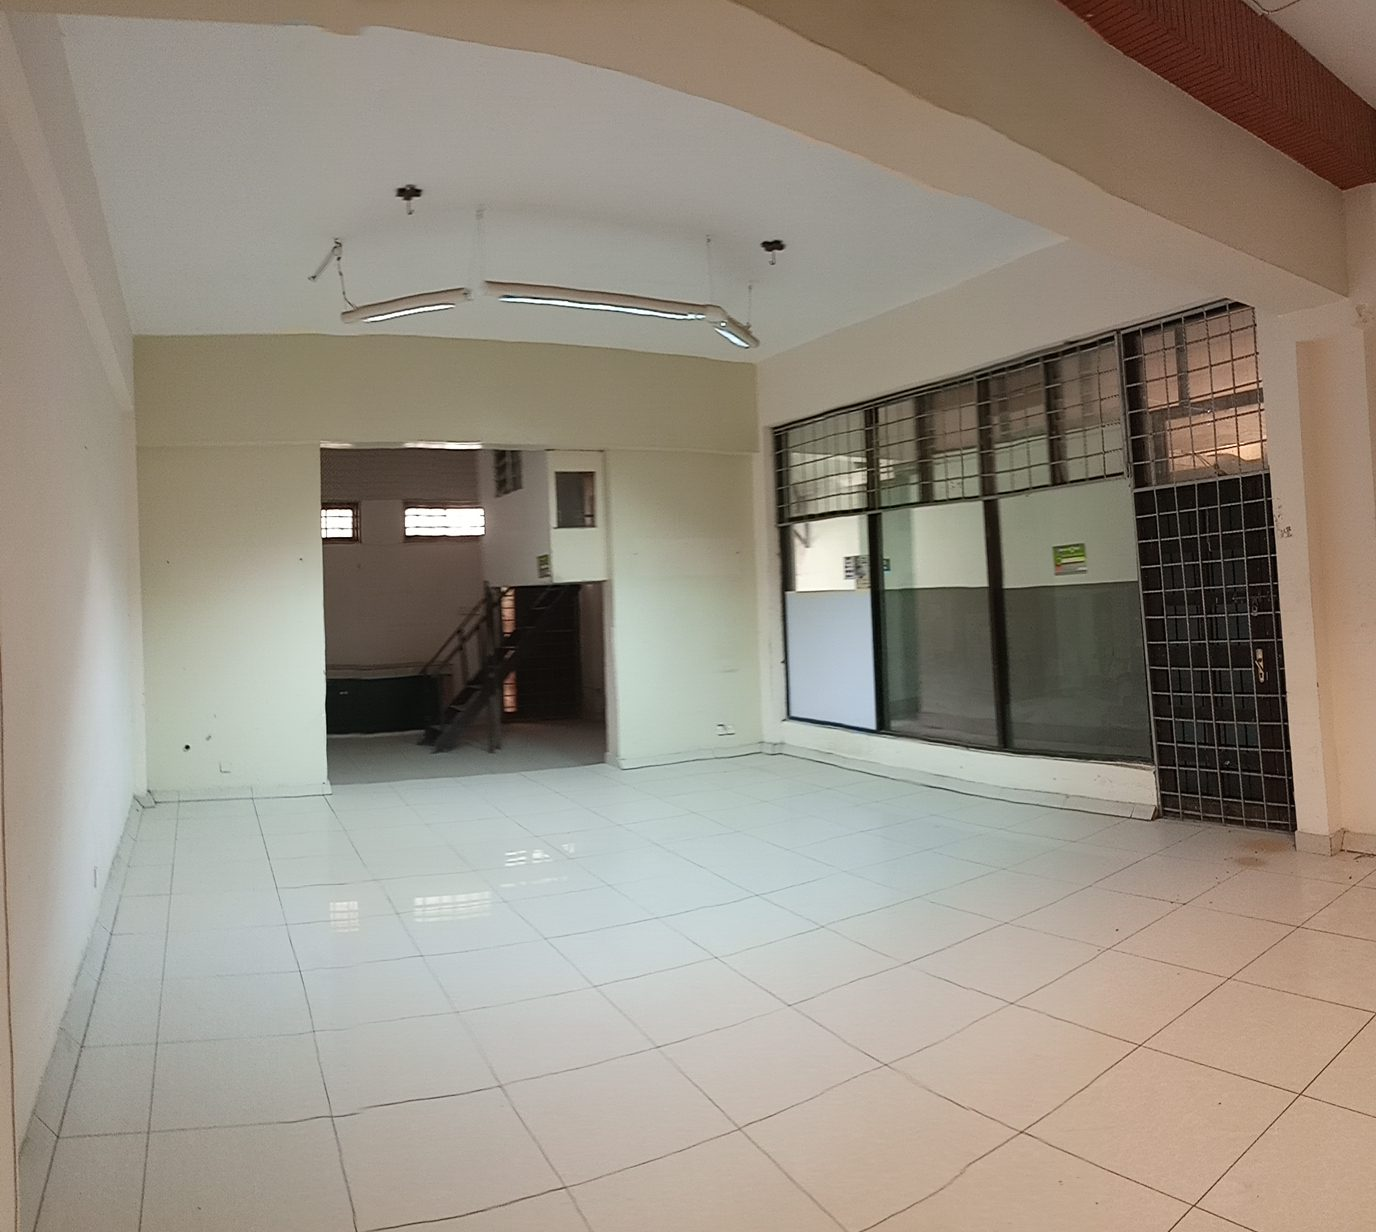 office/shop space 800 sq.feet (ground floor) for rent in Nyali next to City Mall